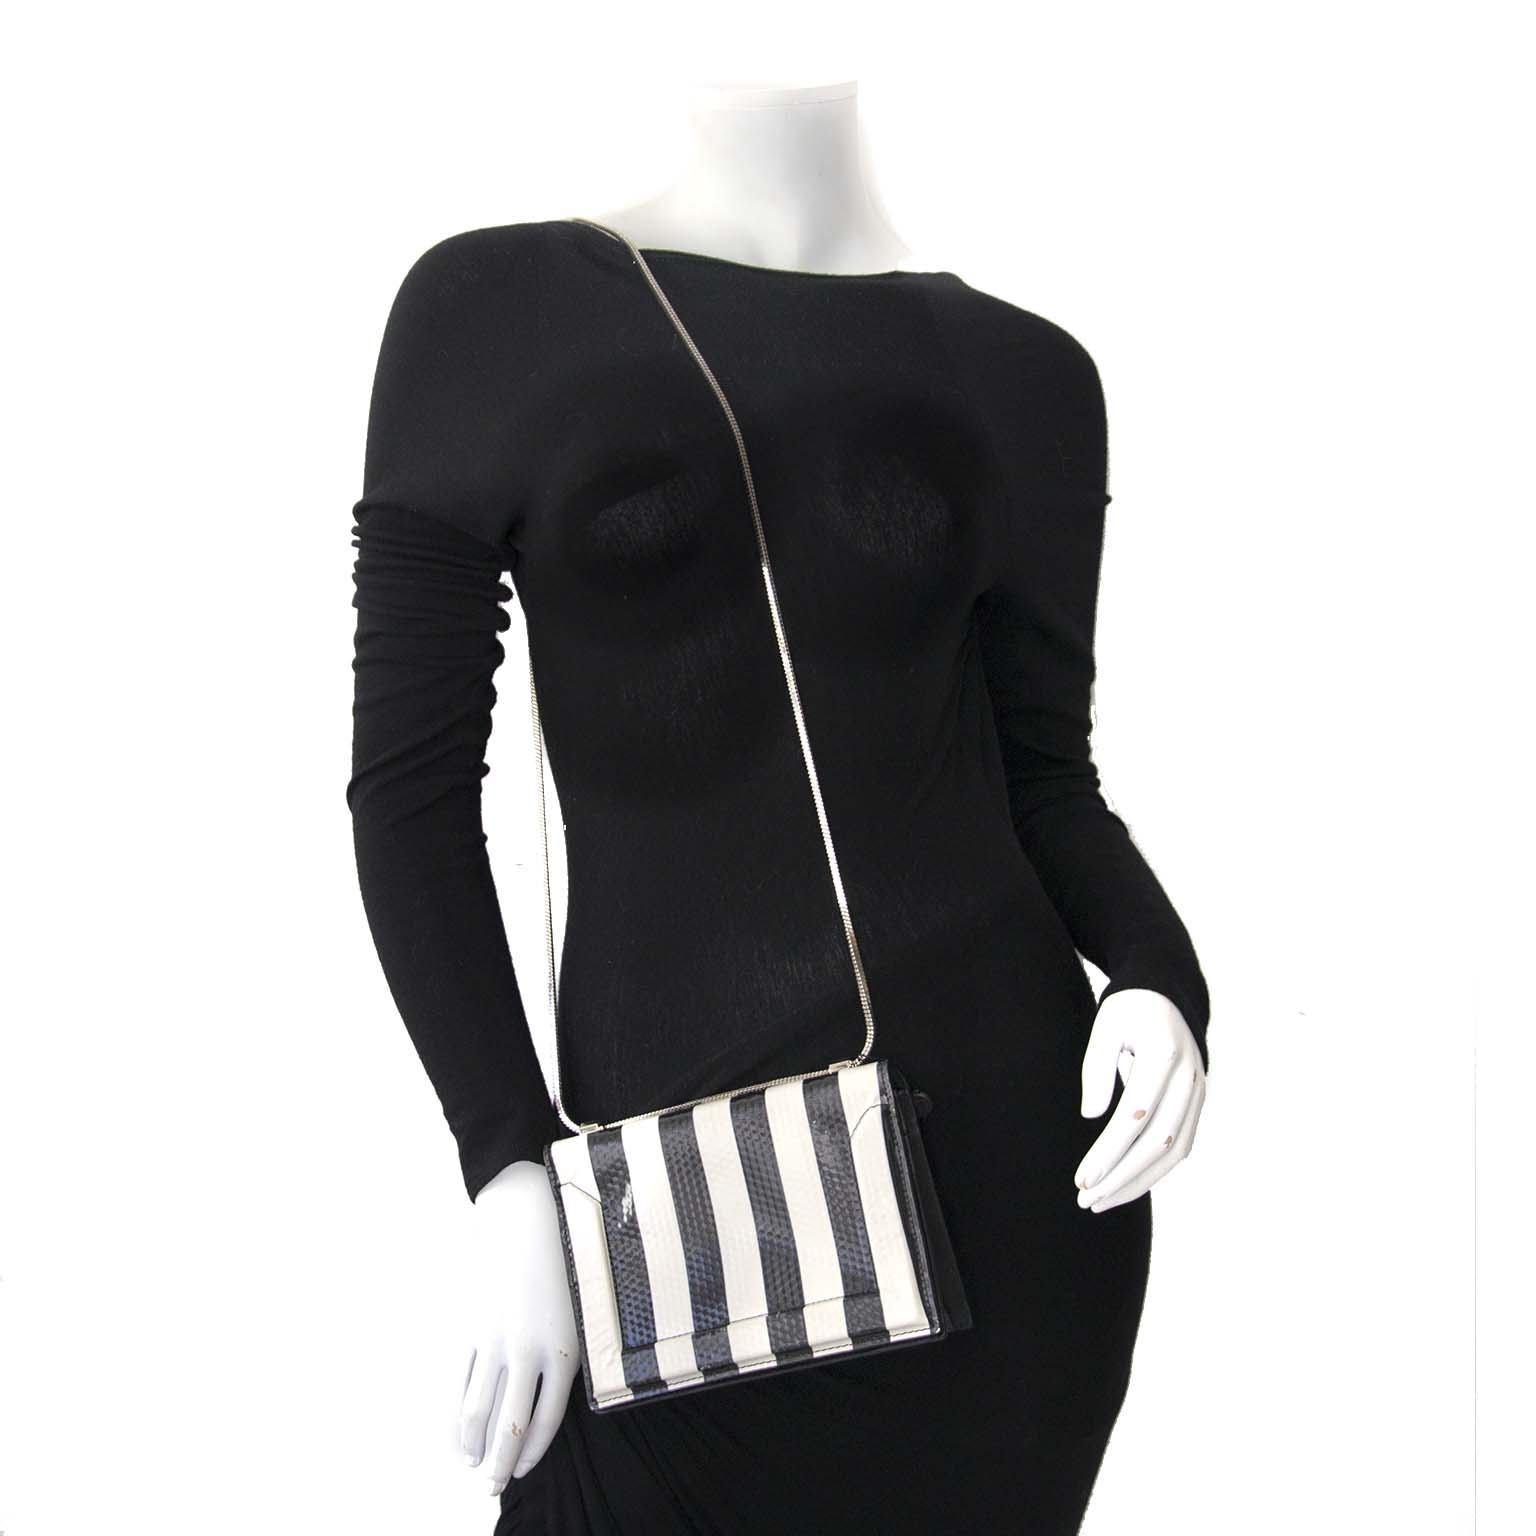 3.1 Phillip Lim Black & White Striped Soleil Shoulder Bag Buy authentic designer Phillip Lim secondhand bags at Labellov at the best price. Safe and secure shopping. Koop tweedehands authentieke Phillip Lim tassen bij designer webwinkel labellov.